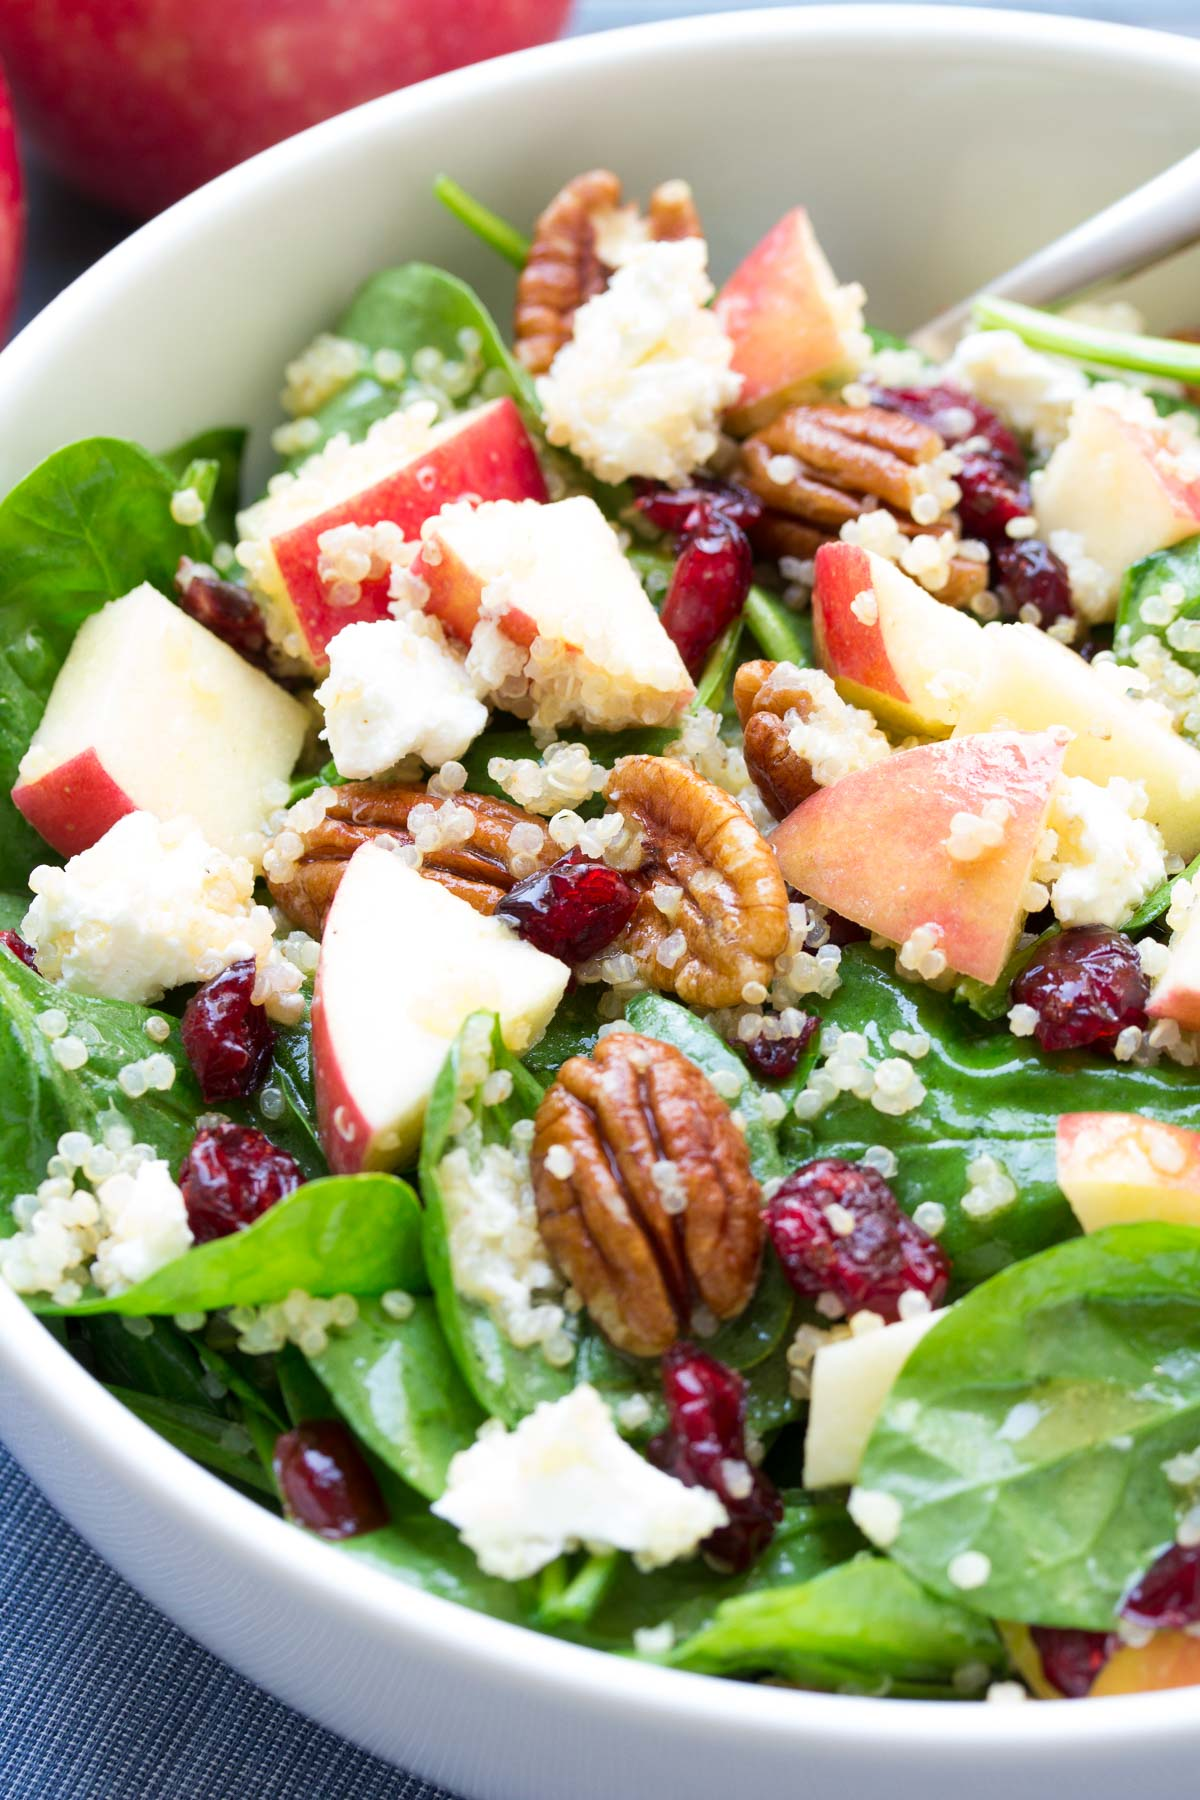 Spinach and Quinoa Salad with Apple and Pecans. SO FULL OF FLAVOR! My favorite healthy lunch and dinner side dish!   www.kristineskitchenblog.com